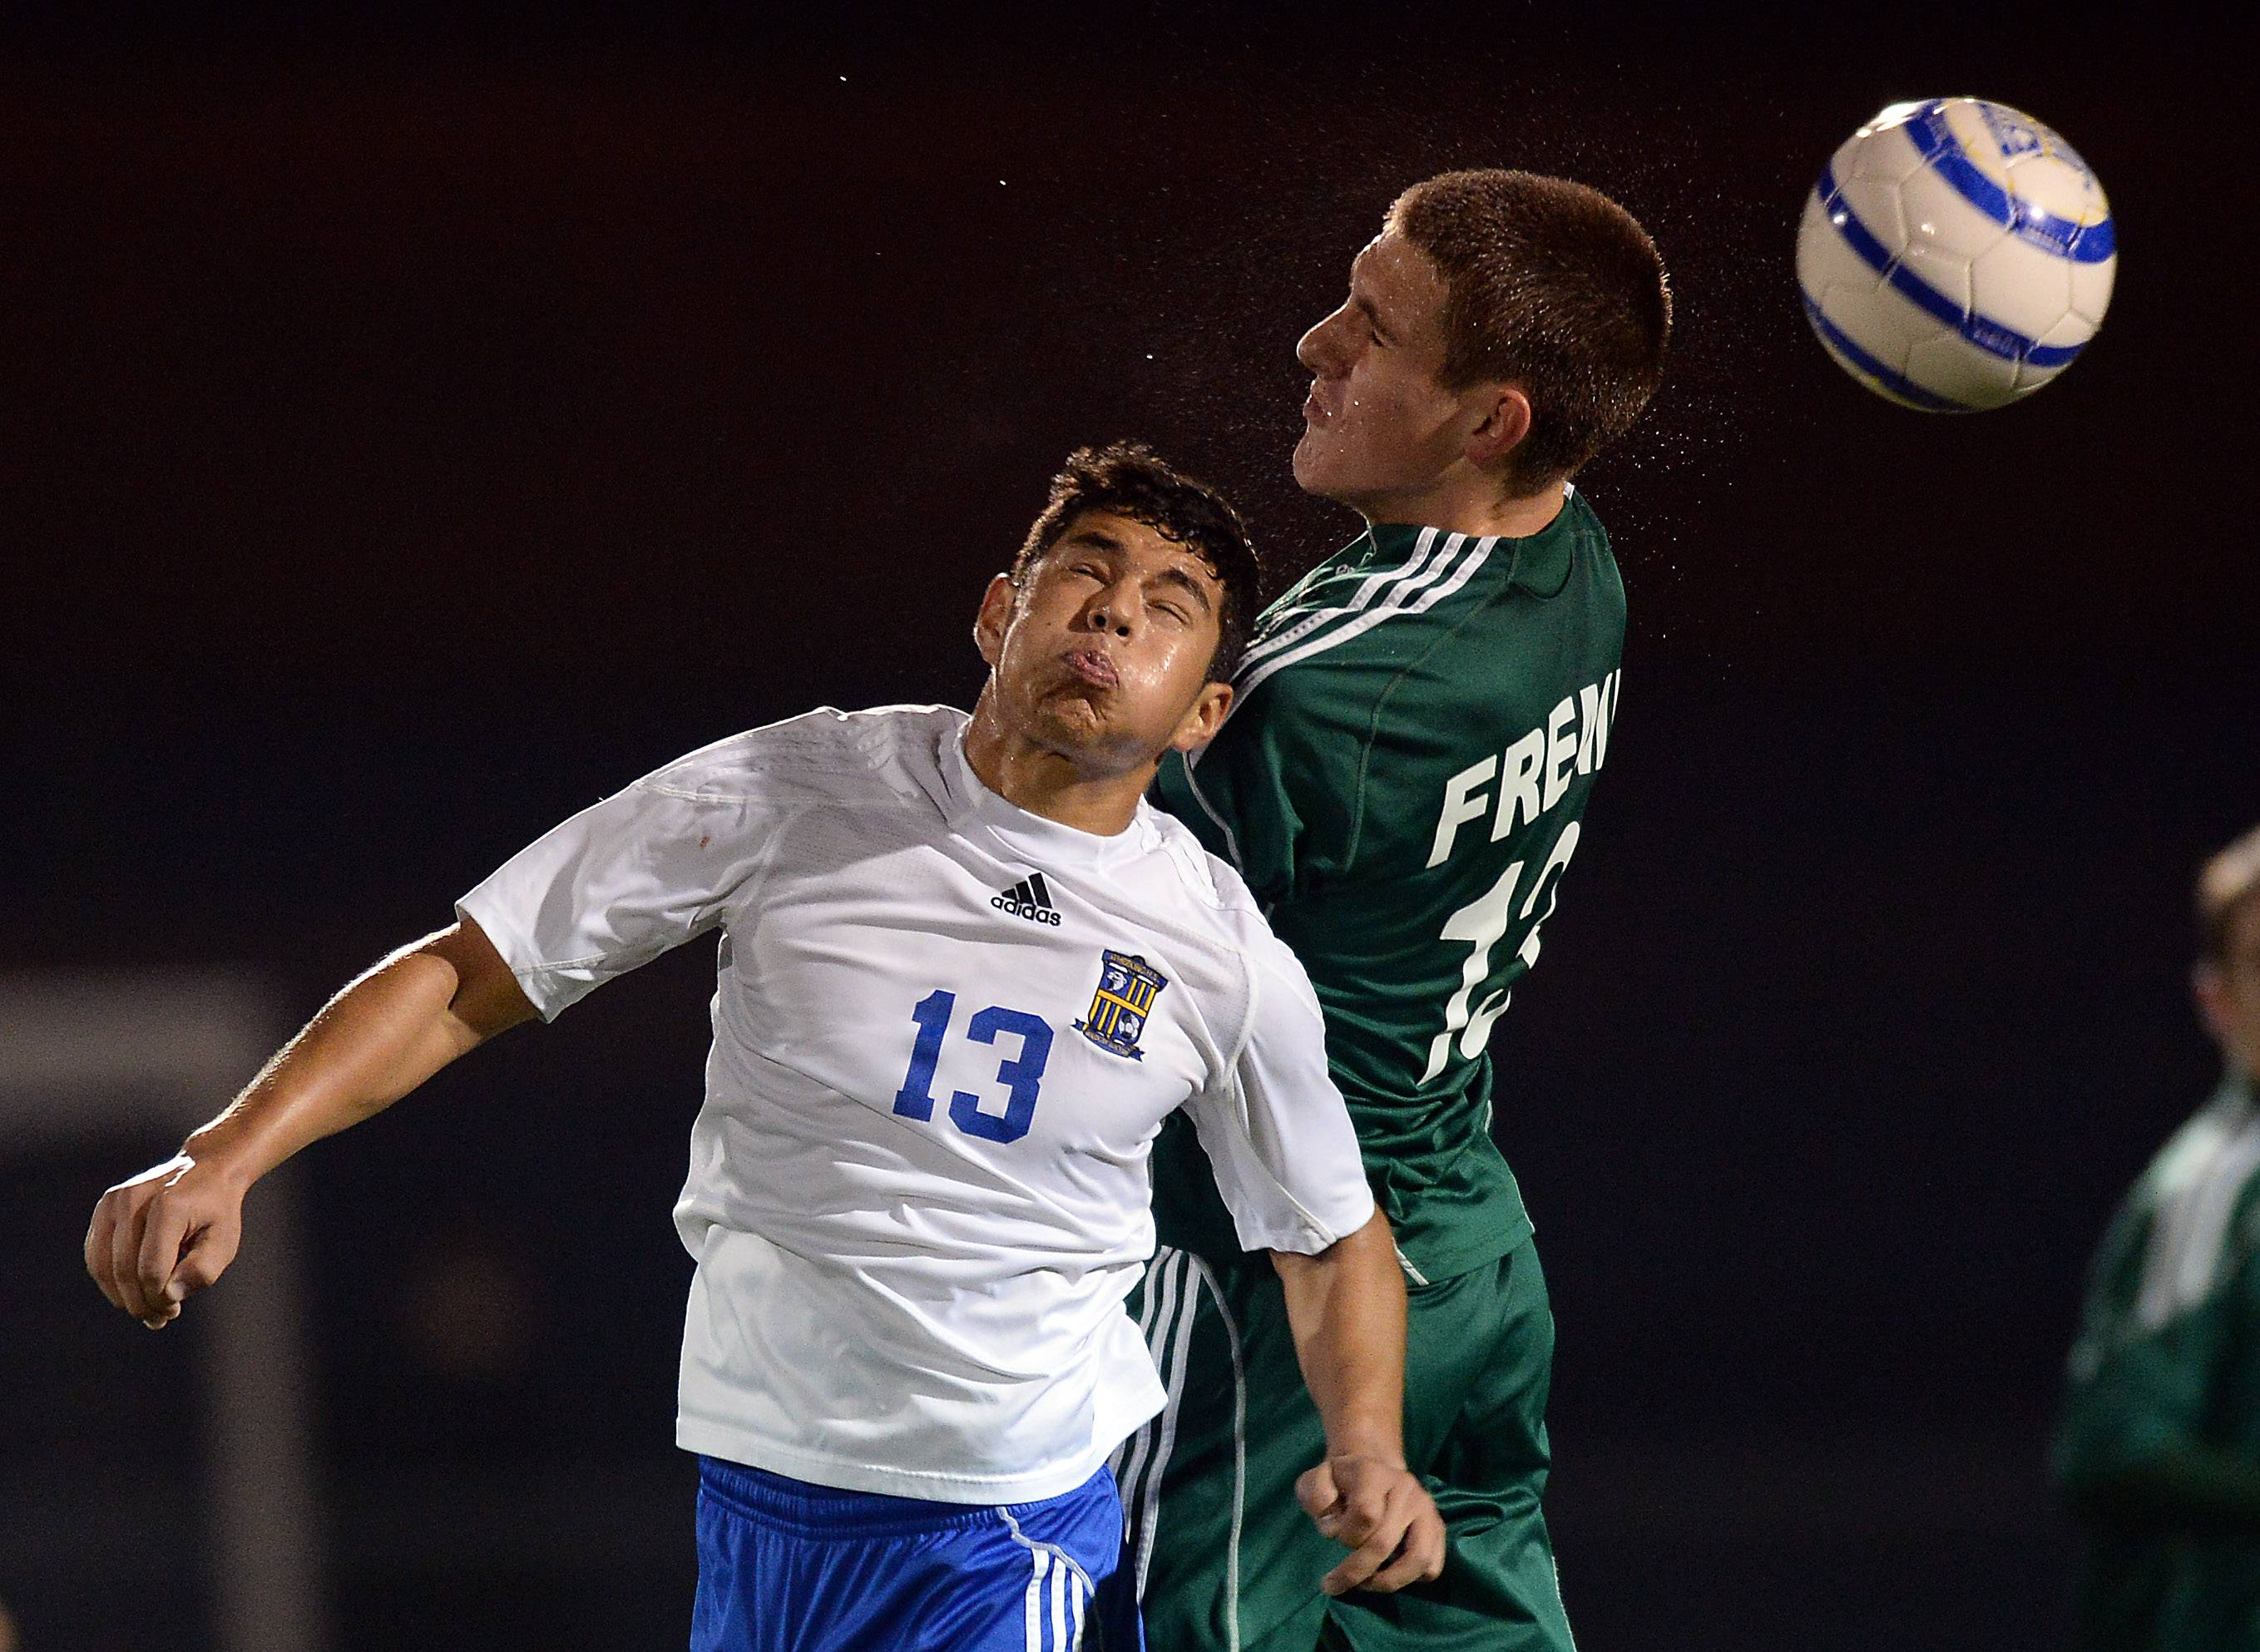 Fremd's Tomas Peleckas and Wheeling's Jose Garcia battle for the ball in the Mid-Suburban League championship game last week at Wheeling. Both teams will compete in beginning rounds of the Palatine sectional this week.